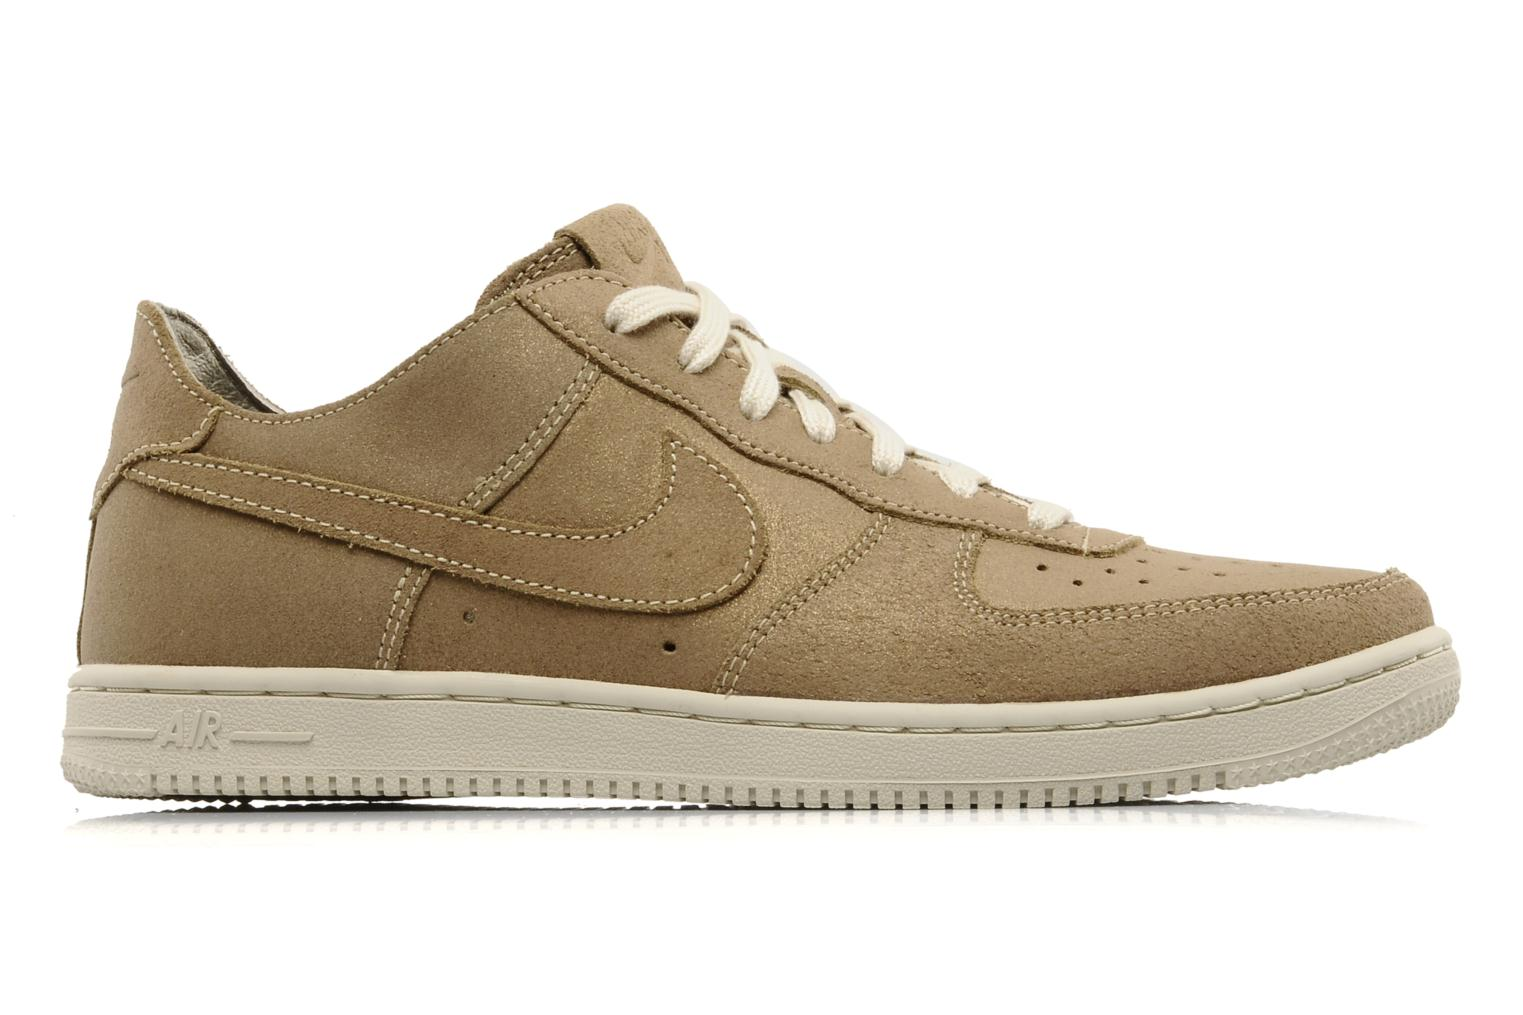 Sneakers Nike Wmns air force 1 low light Oro e bronzo immagine posteriore